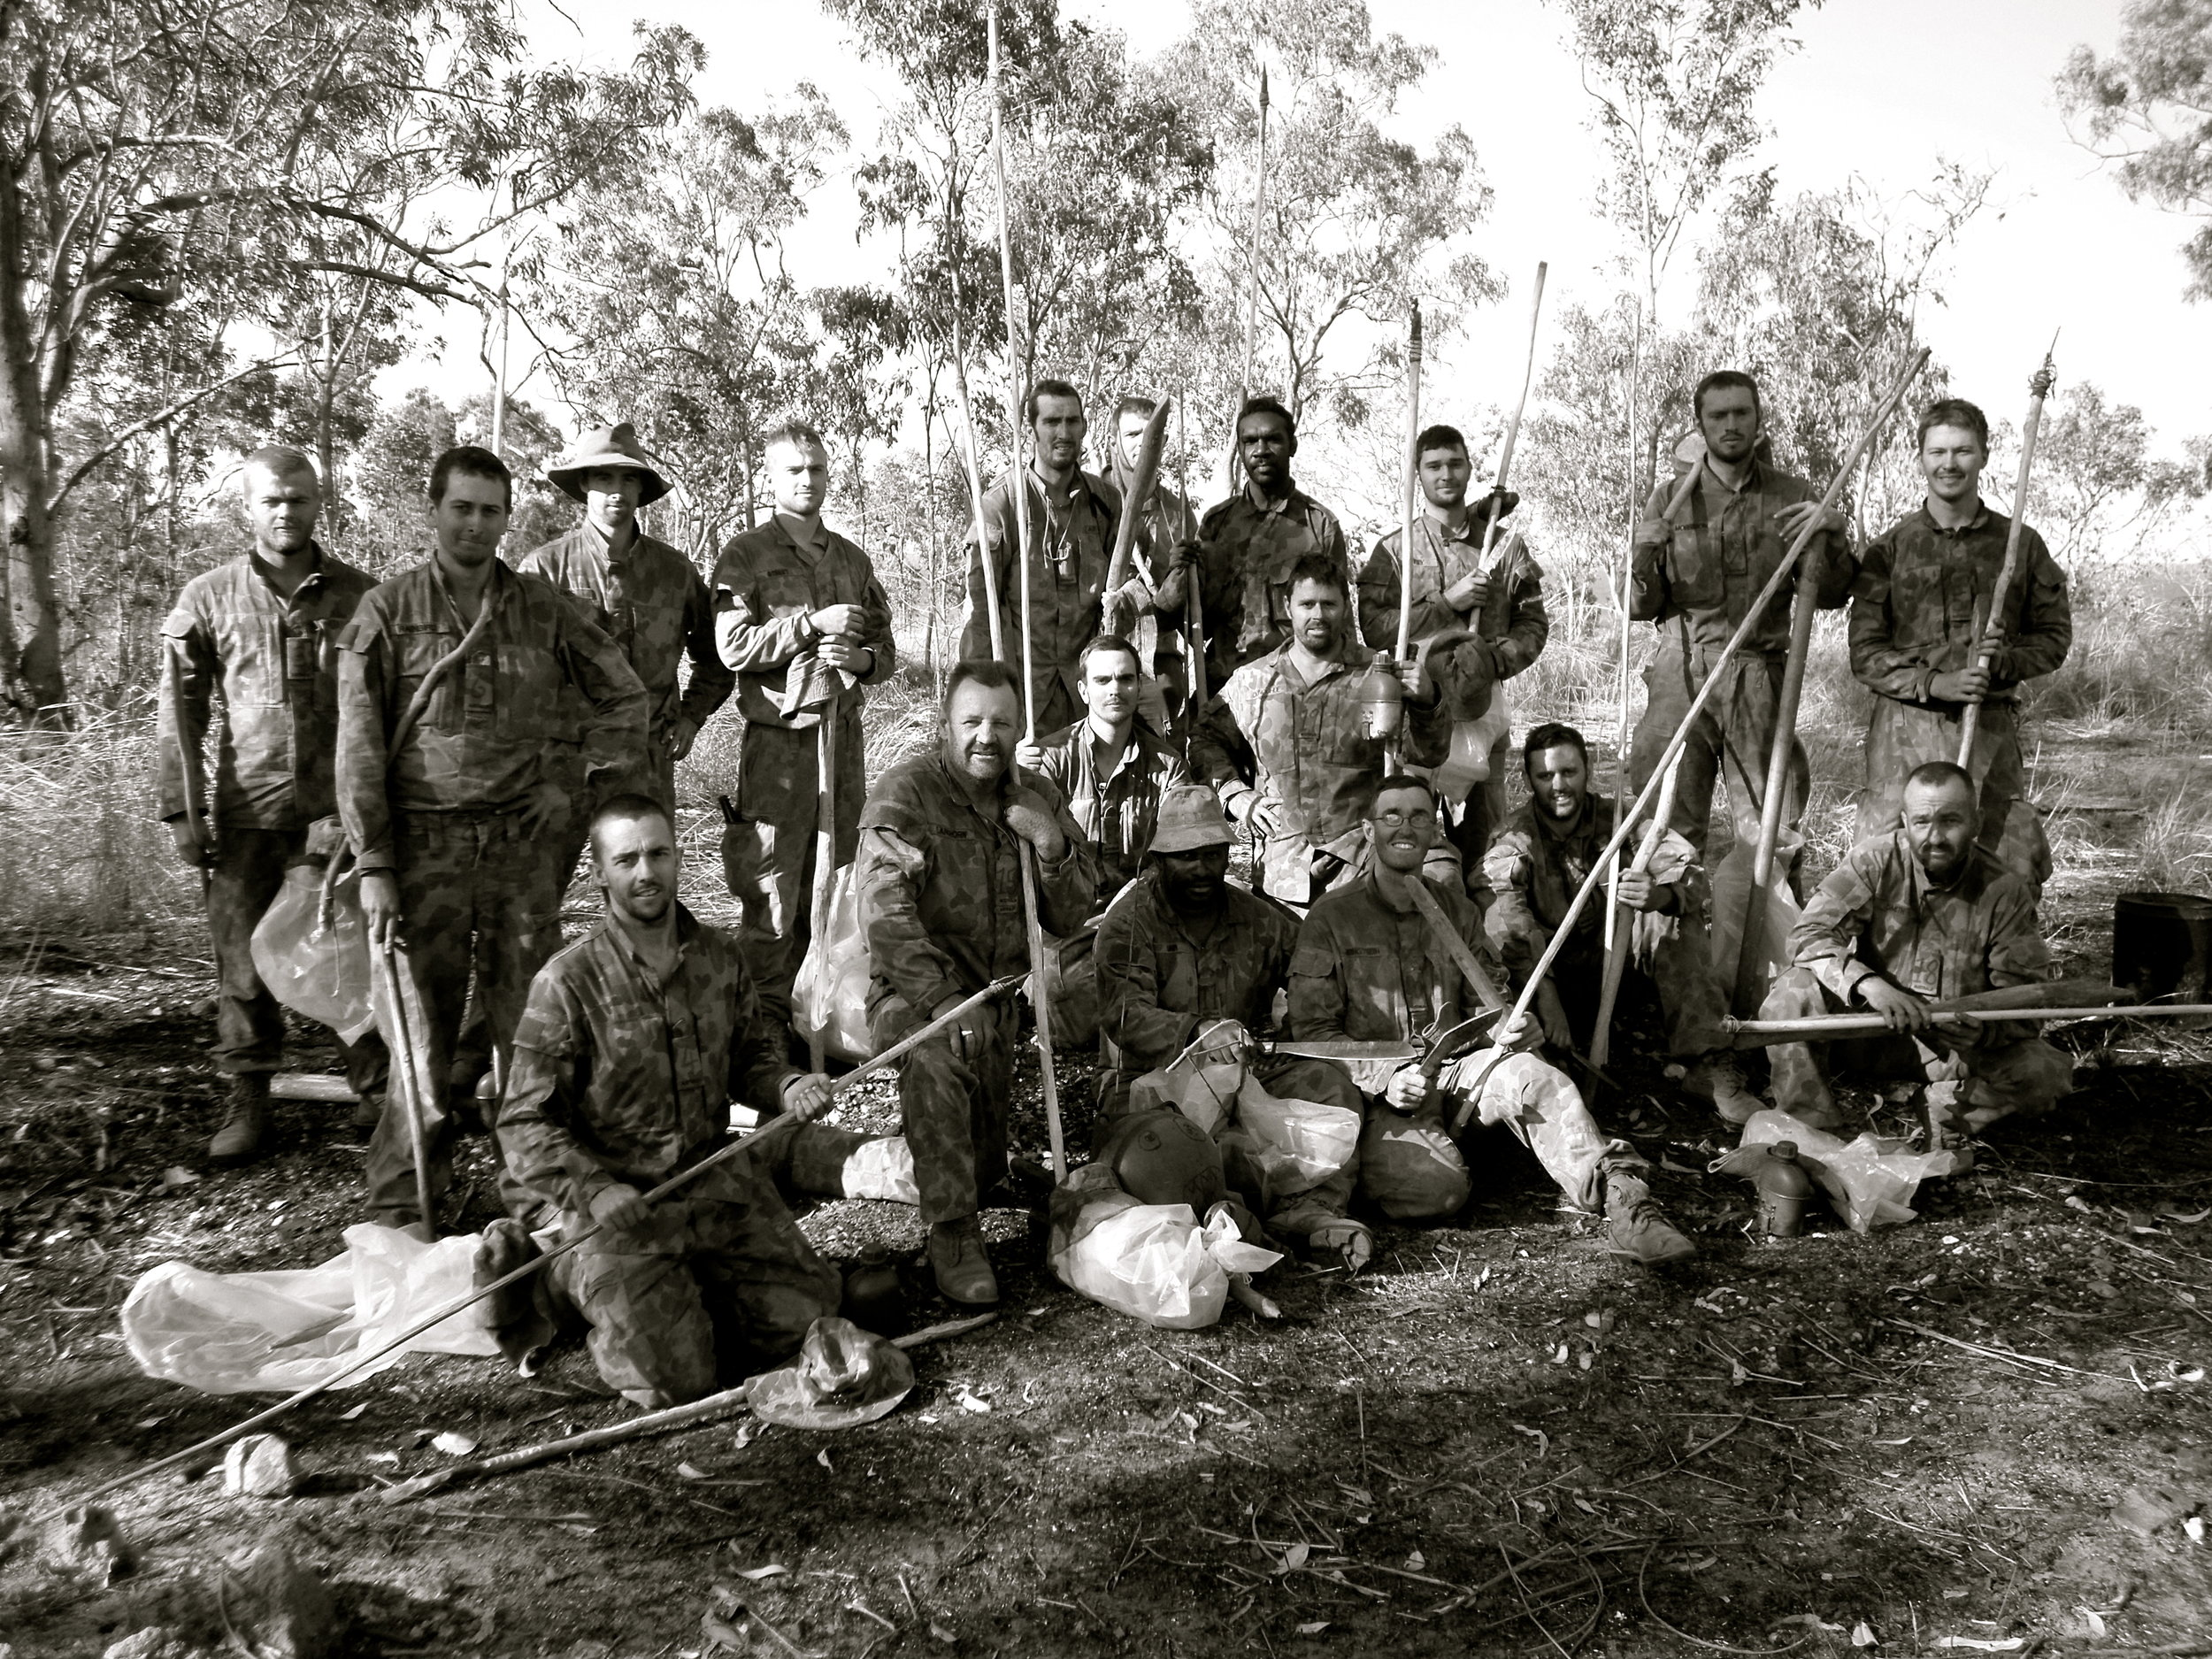 Picture: Me pictured 2nd in, rear left during a survival course held in Arnhem Land, NT 2008 with the Australian Army.